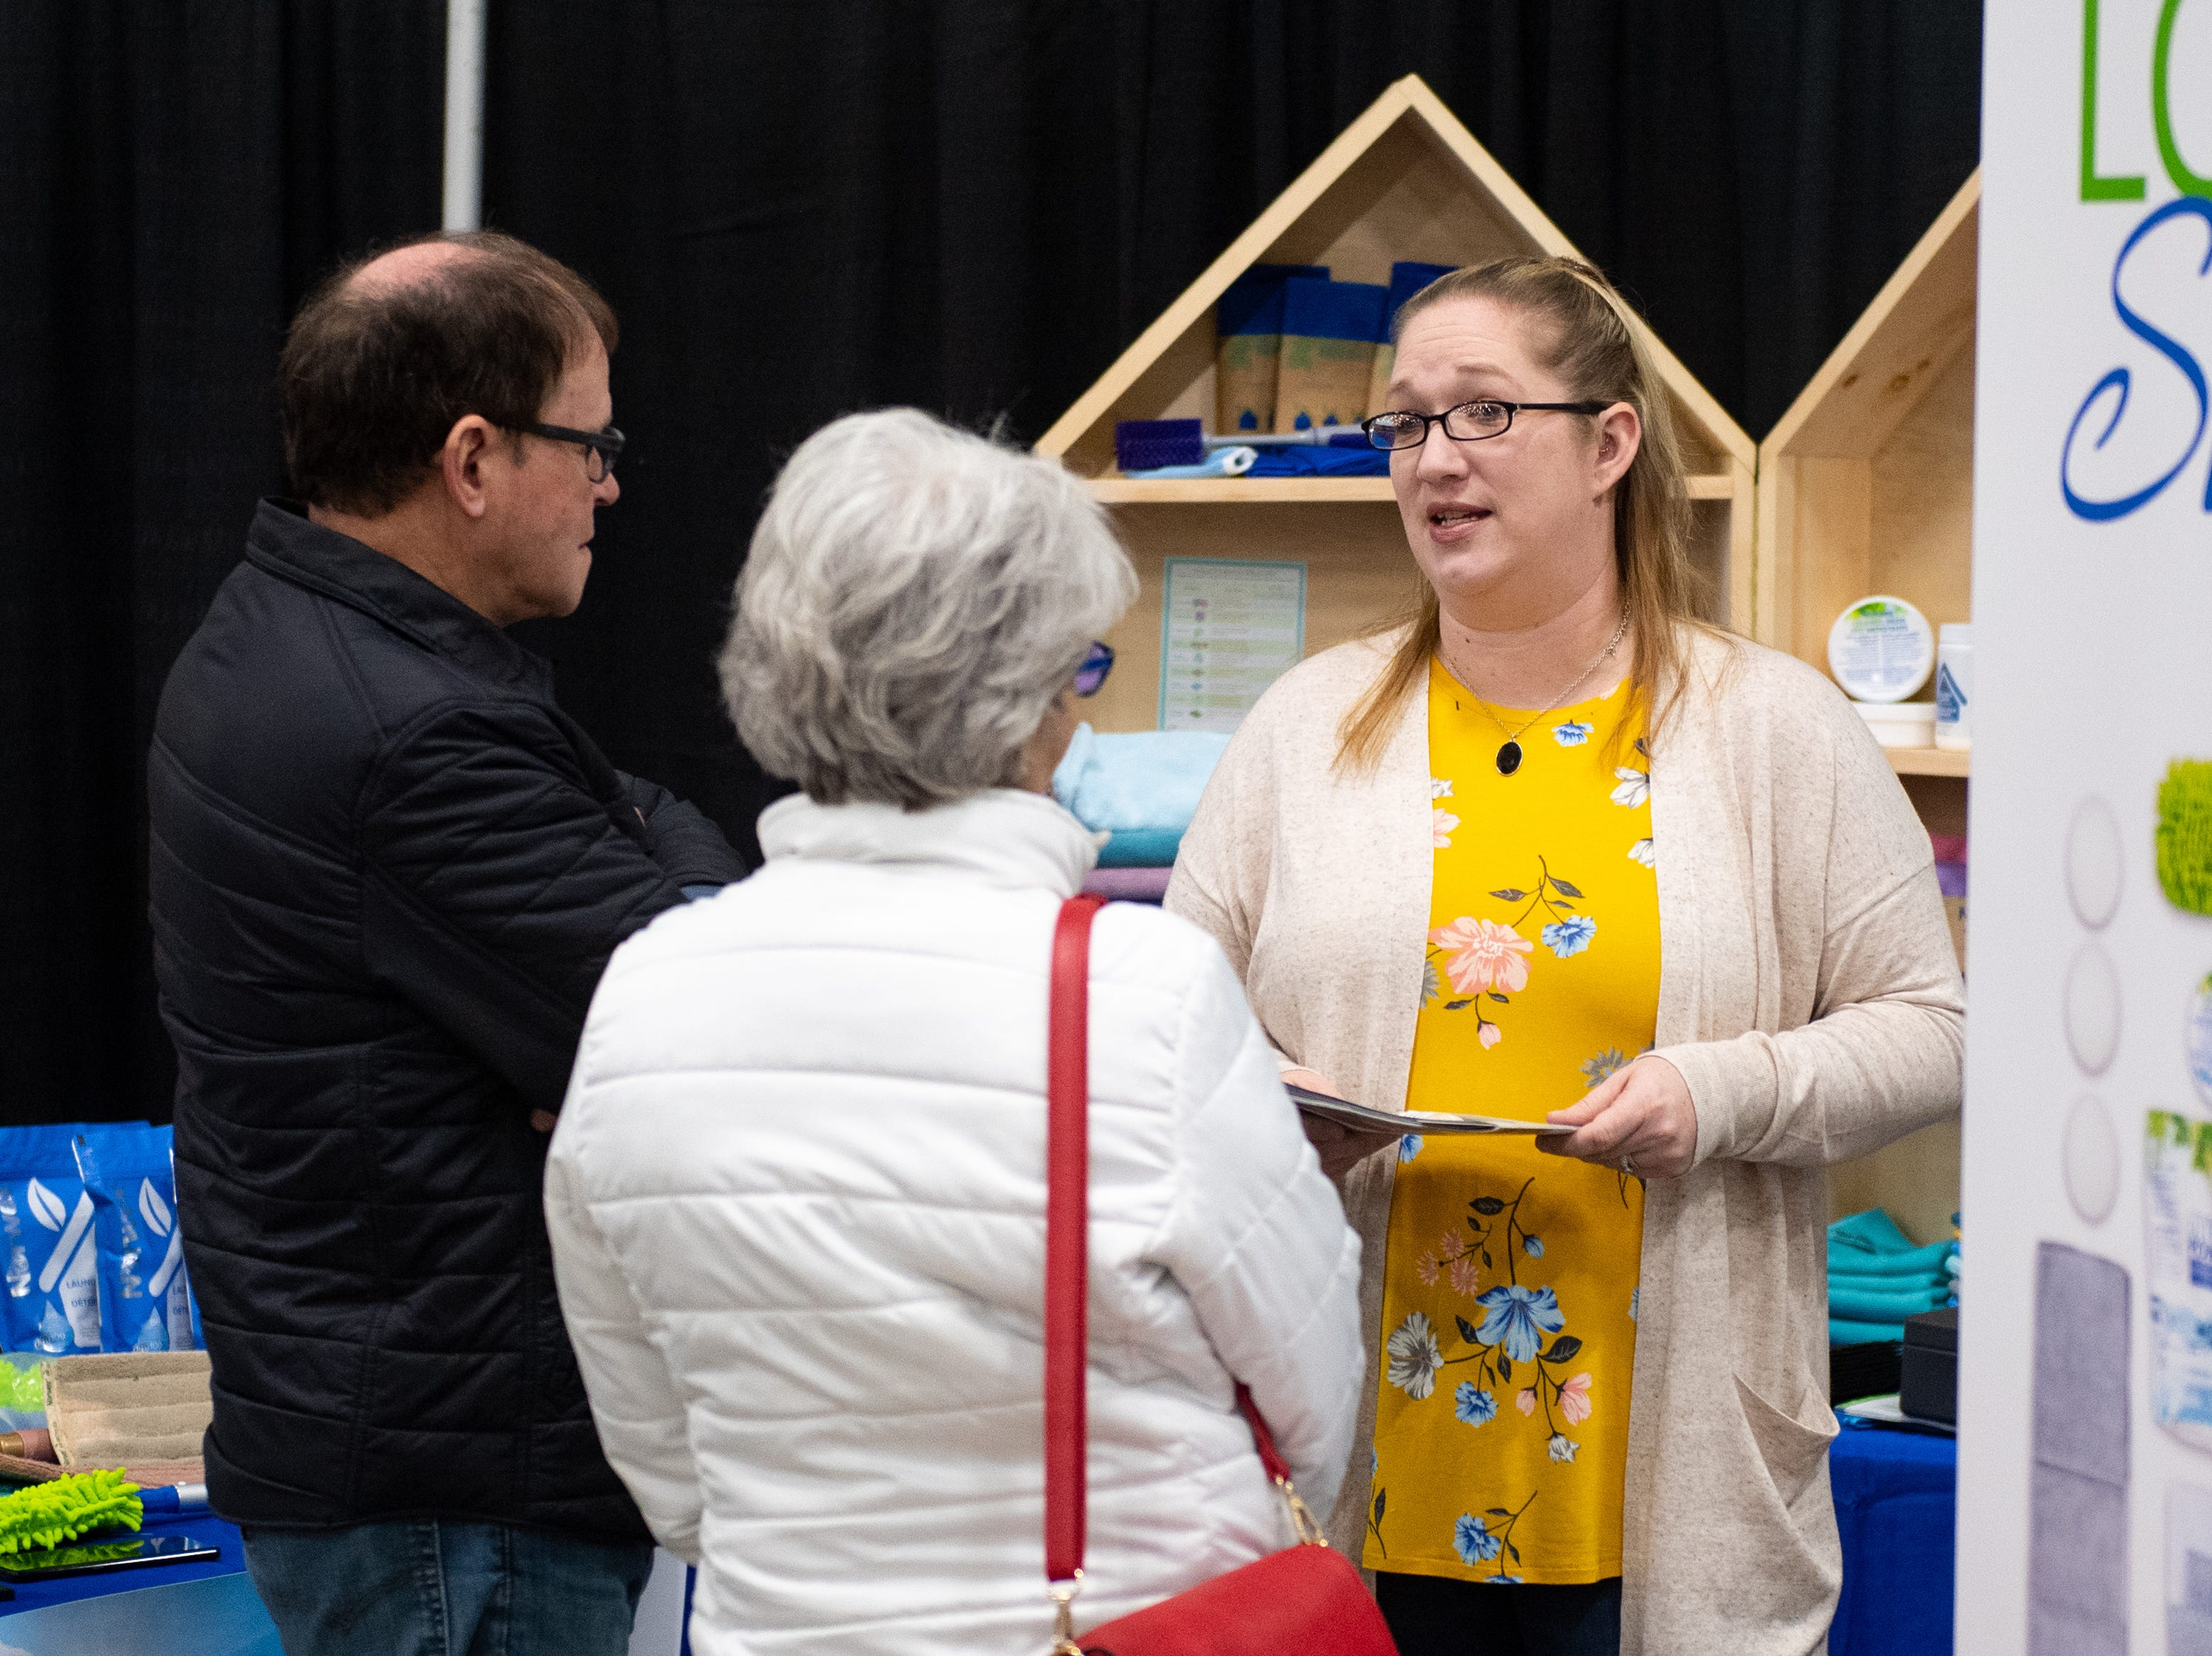 Vendors are a wealth of information at the 2019 Home & Garden Show, February 8, 2019.